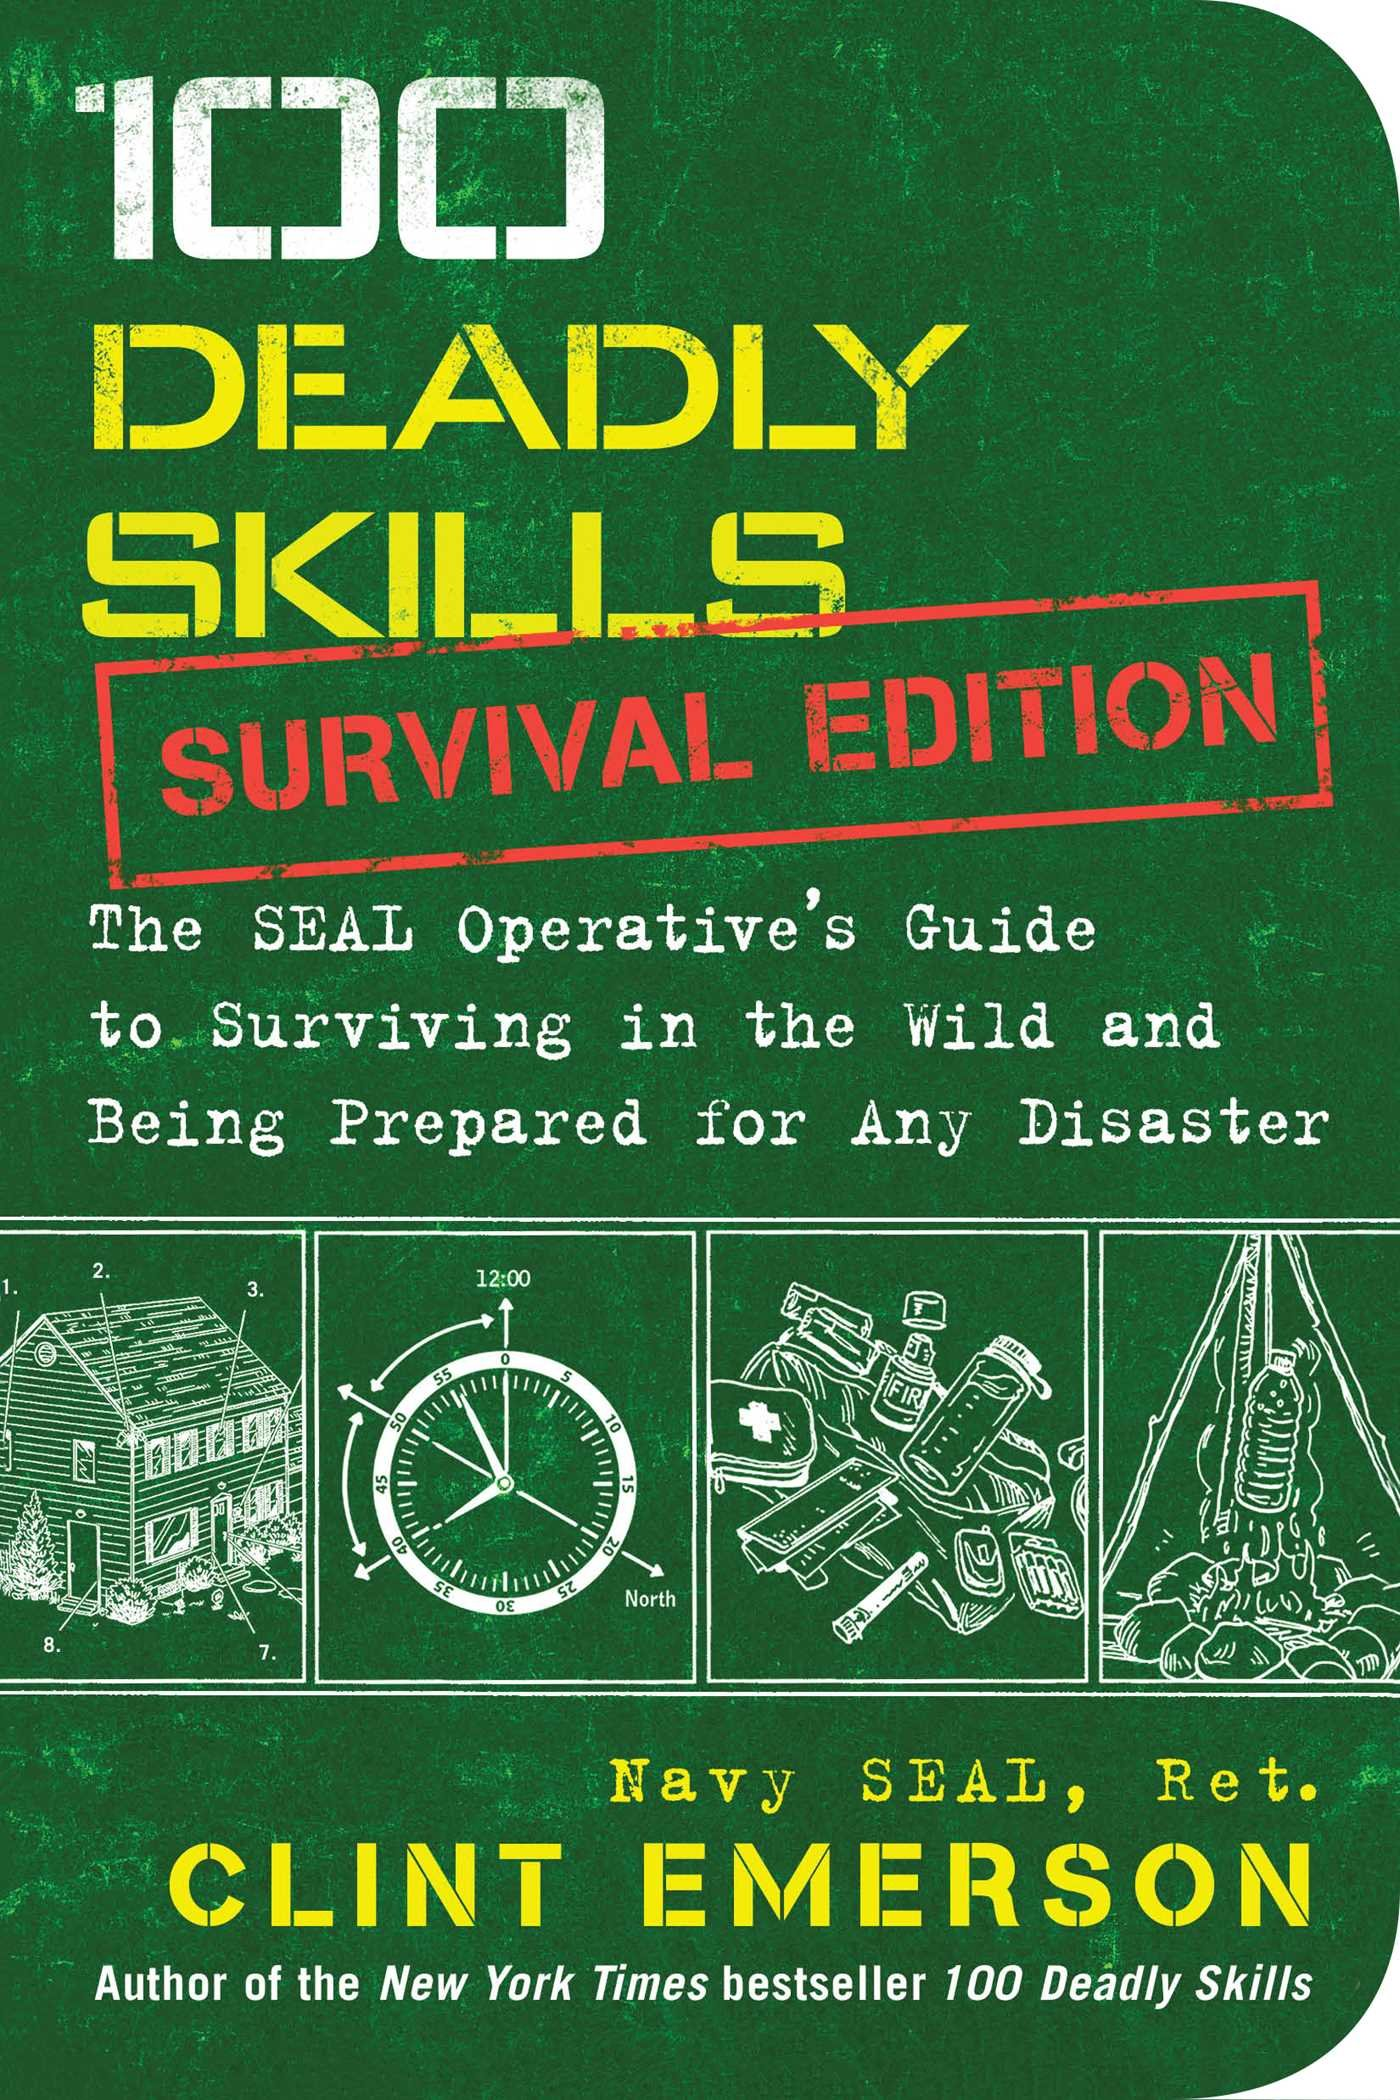 100 deadly skills survival edition the seal operatives guide to 100 deadly skills survival edition the seal operatives guide to surviving in the wild and being prepared for any disaster clint emerson 9781501143908 fandeluxe Choice Image